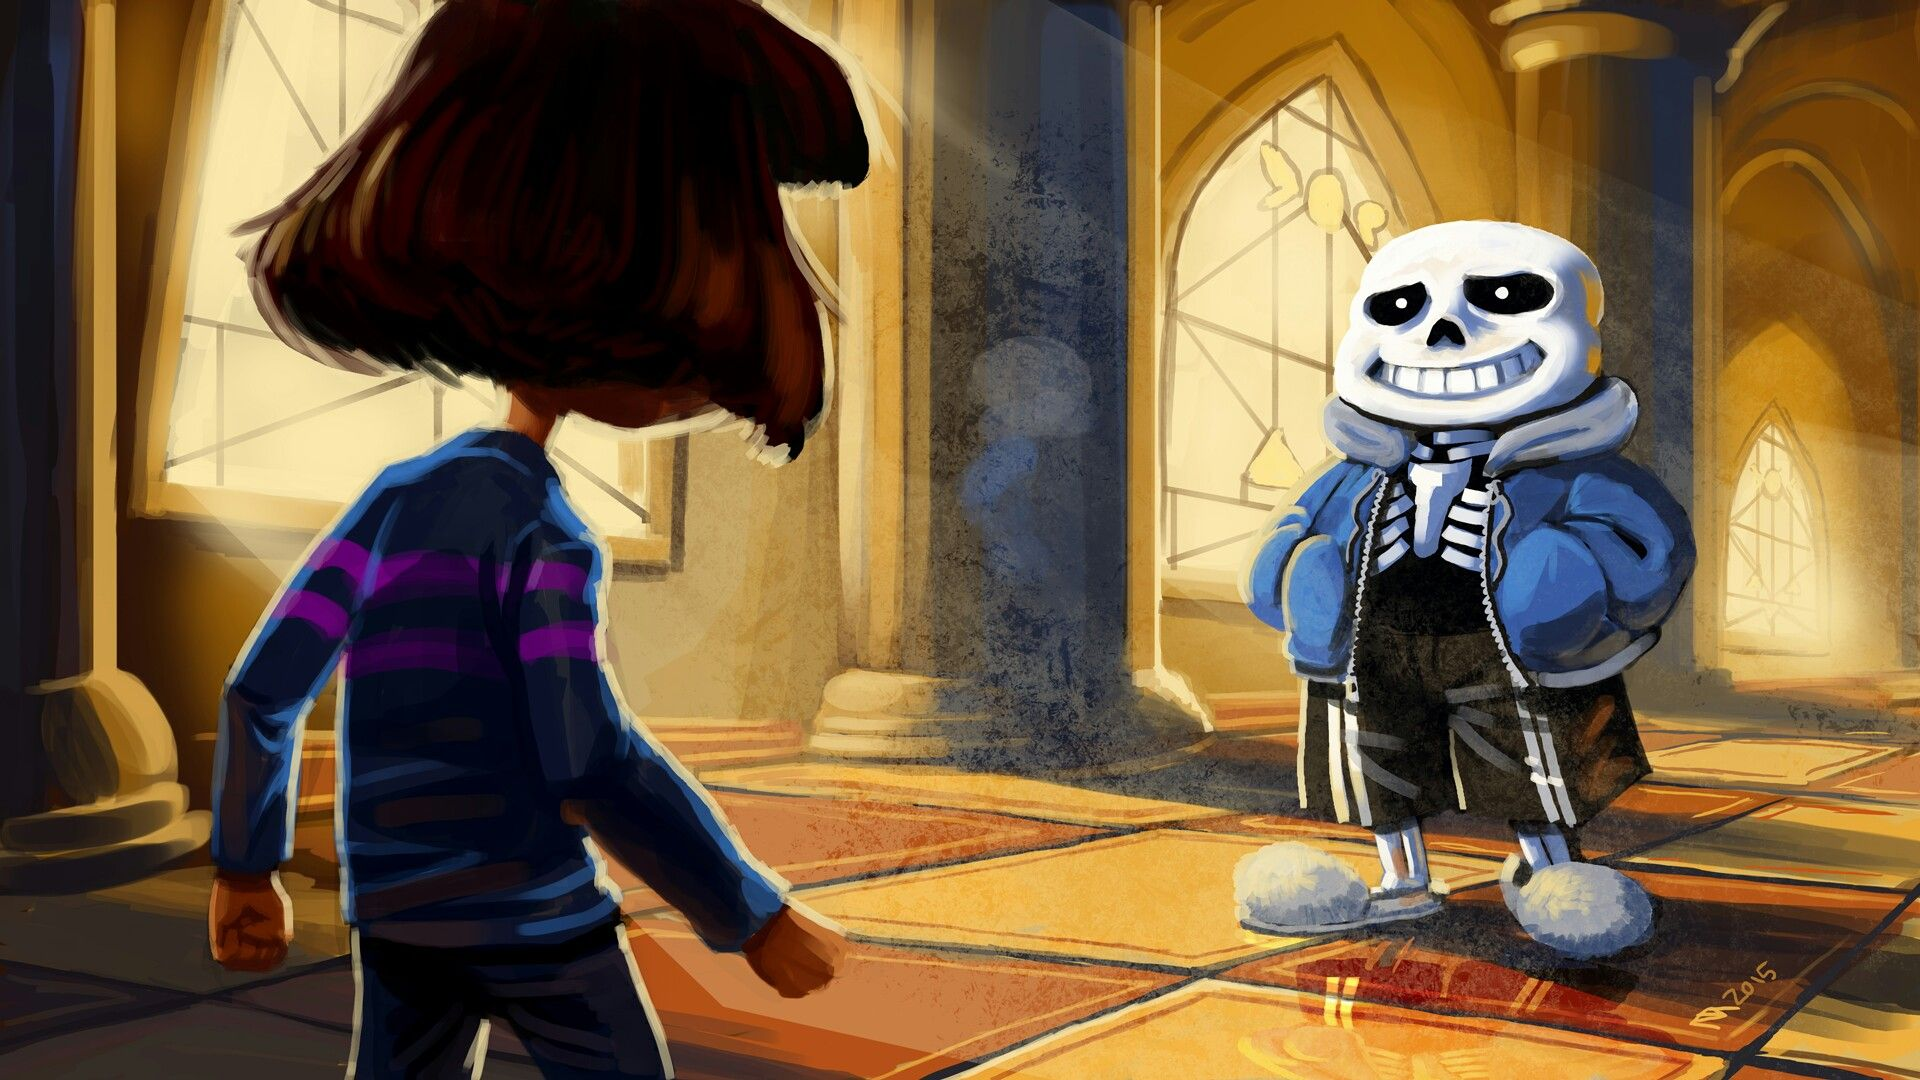 Frisk and Sans from Undertale by Toby Fox